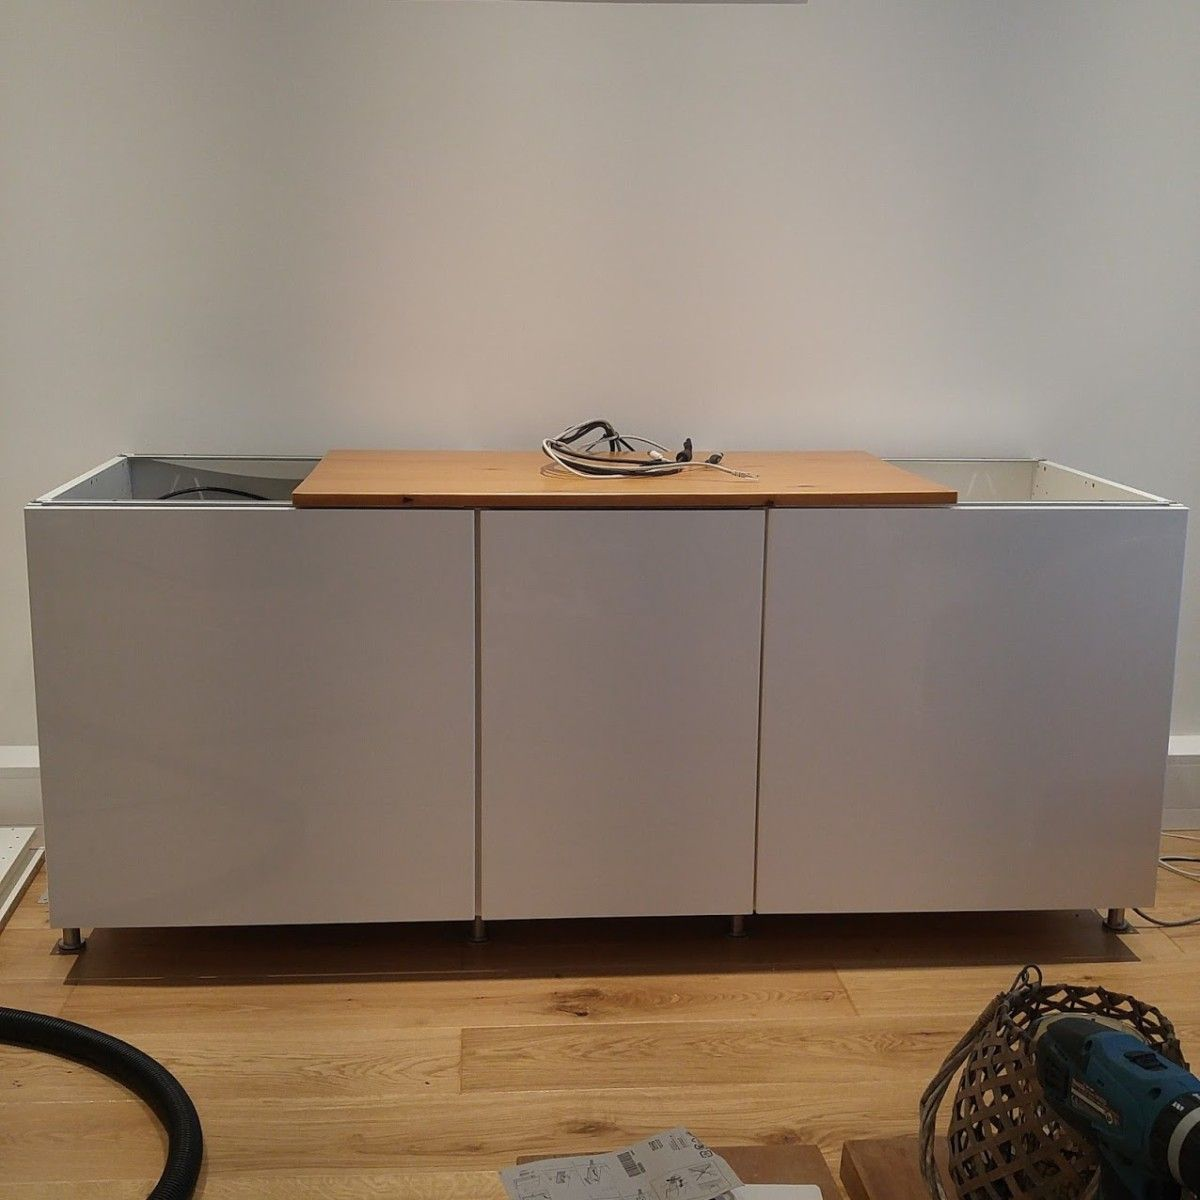 Ikea Method Ikea Metod Cabinets Into Av Unit